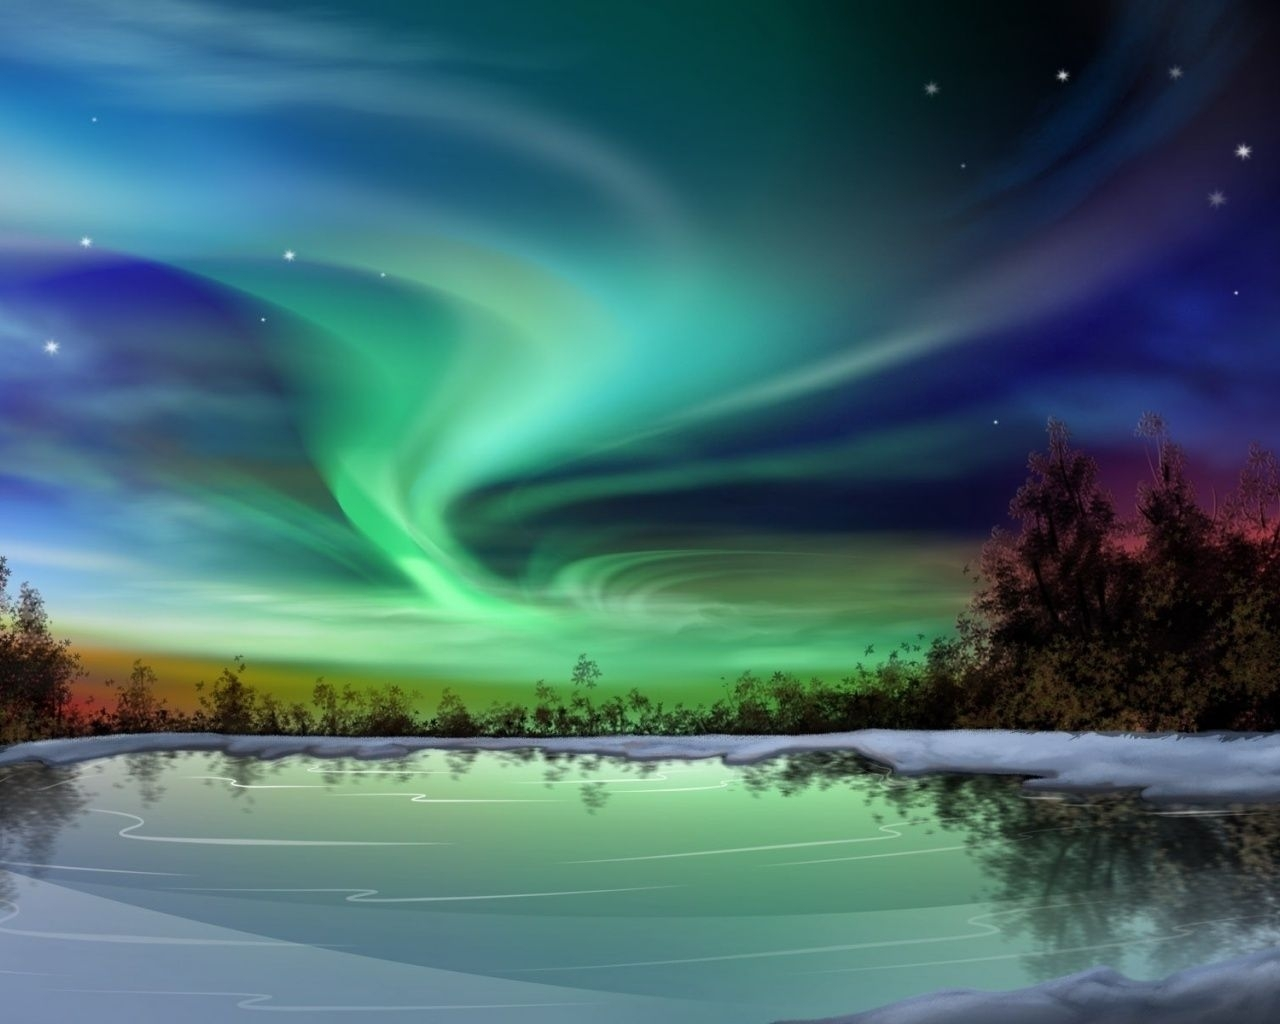 1280x1024 aurora borealis night winter | northern lights | pinterest